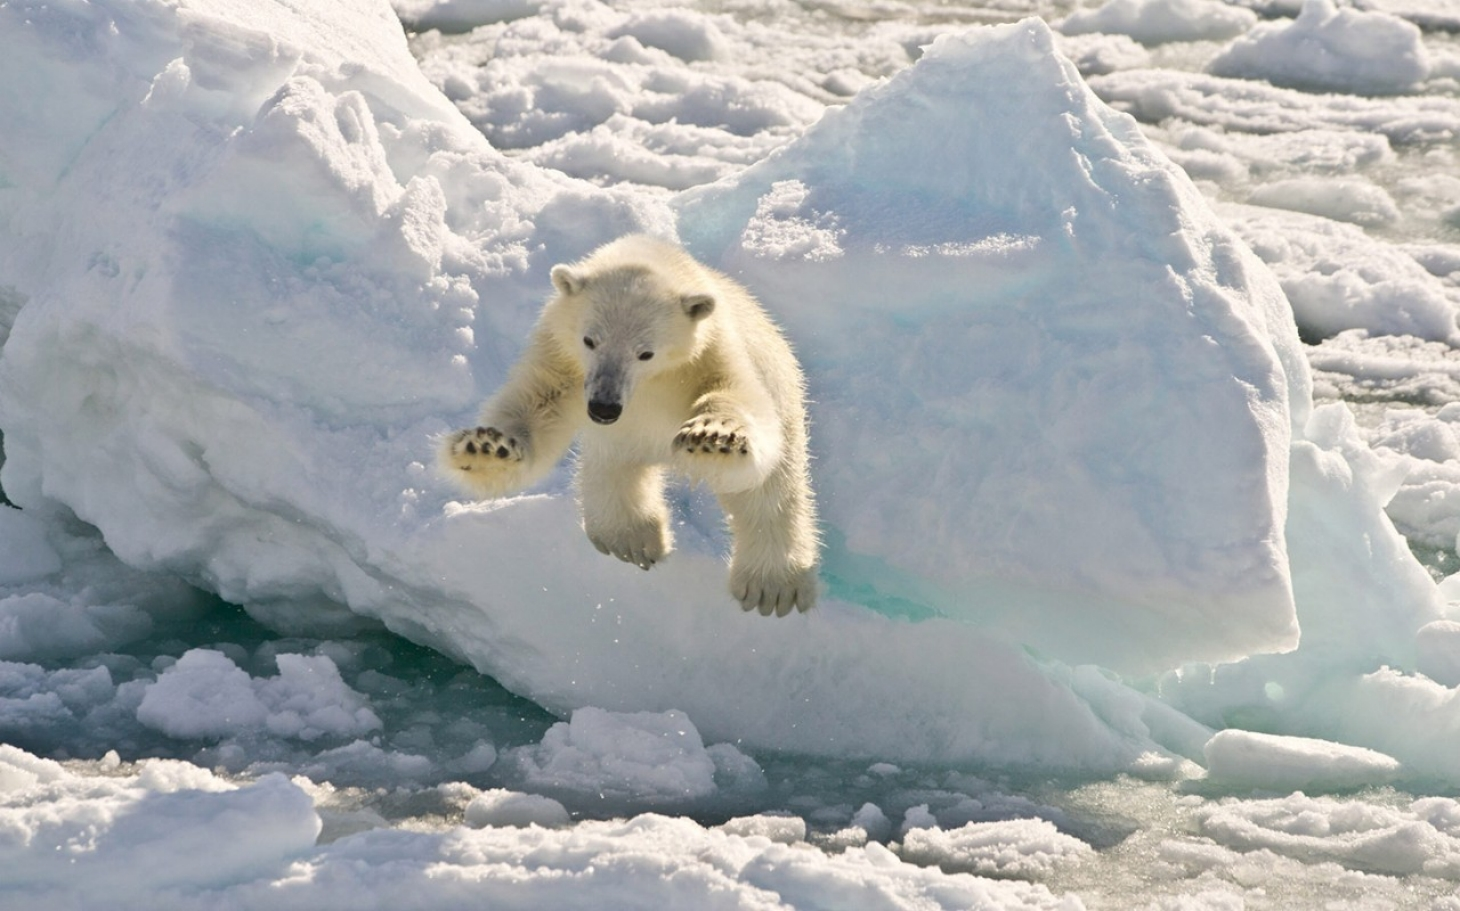 Polar Bears Can't Thrive On Land-Based Diet